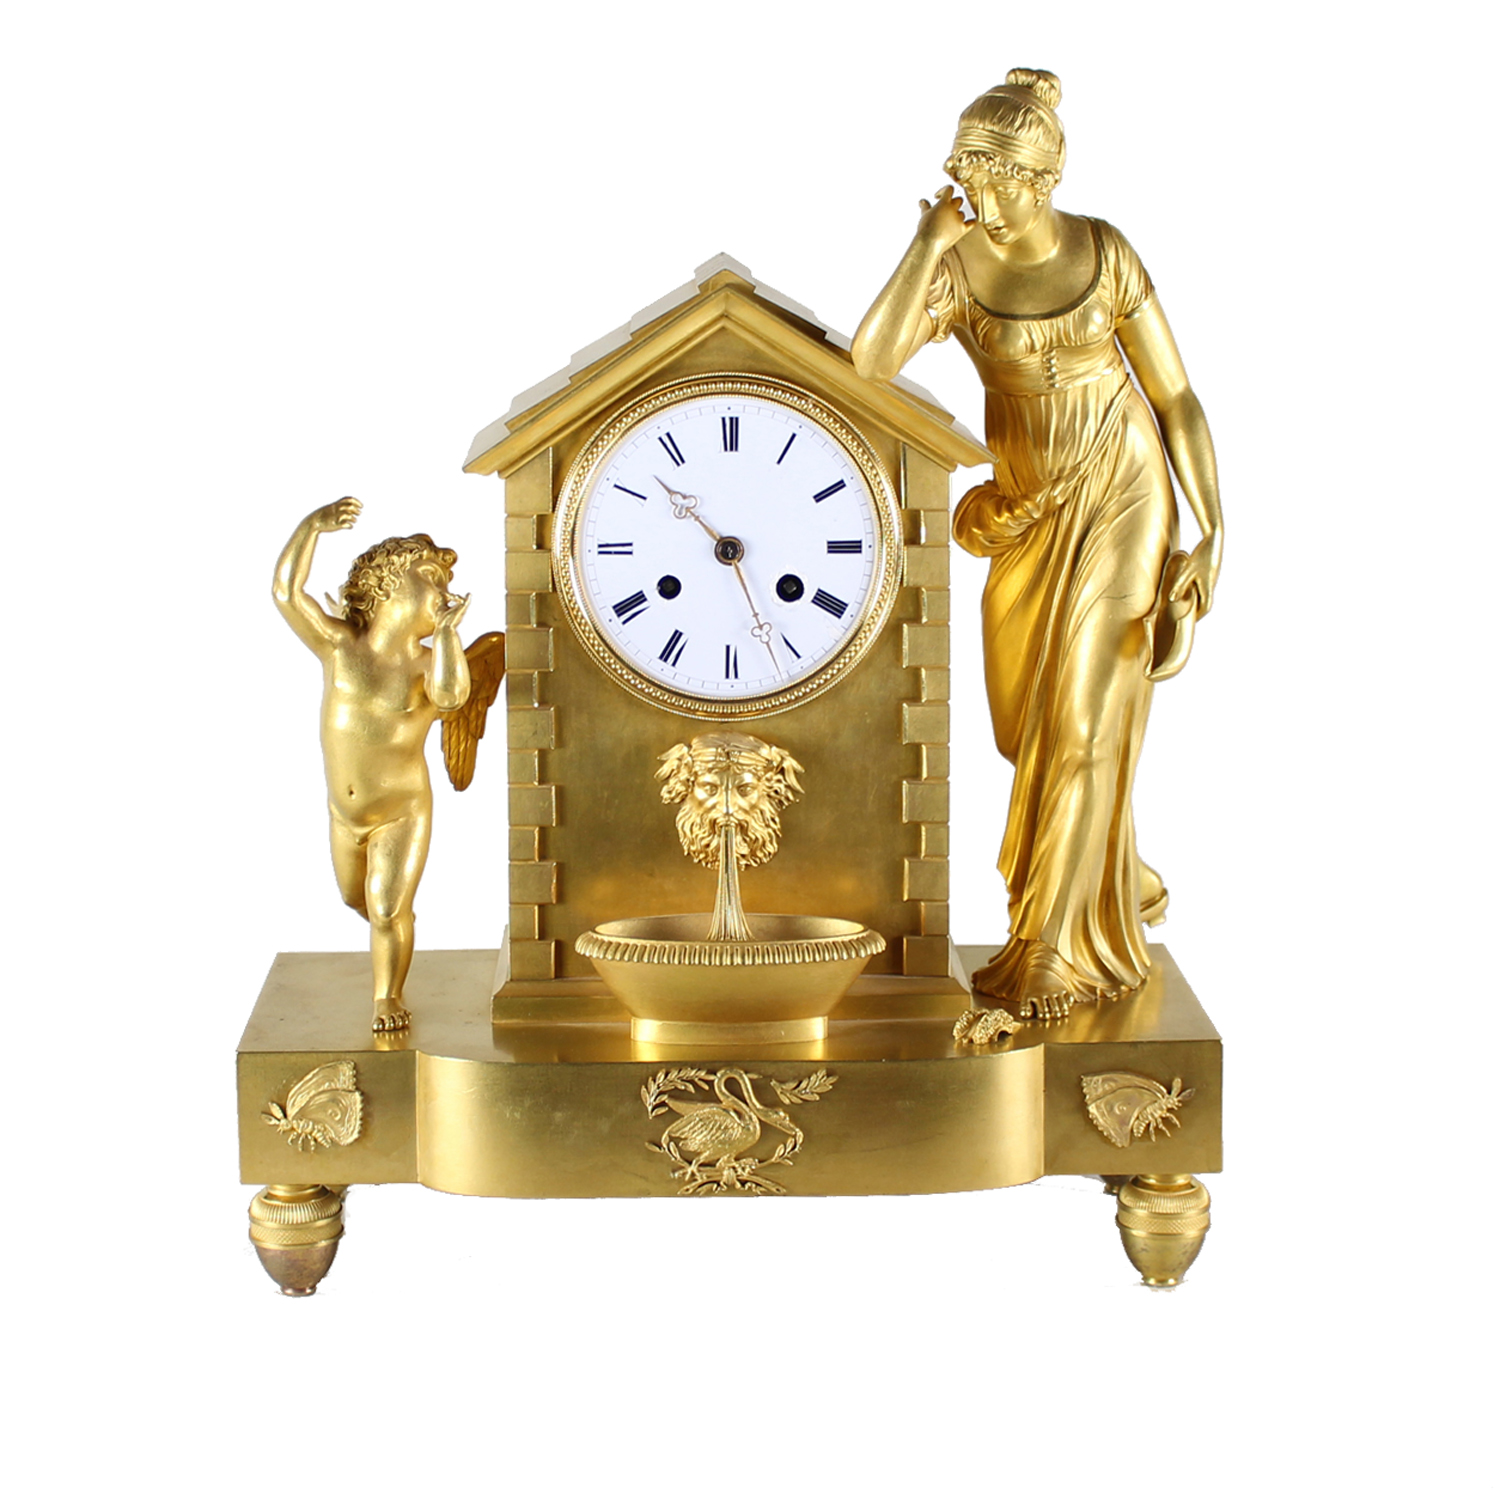 Louis XVI Gilt Bronze Figural Mantel Clock, French Late 18th Century